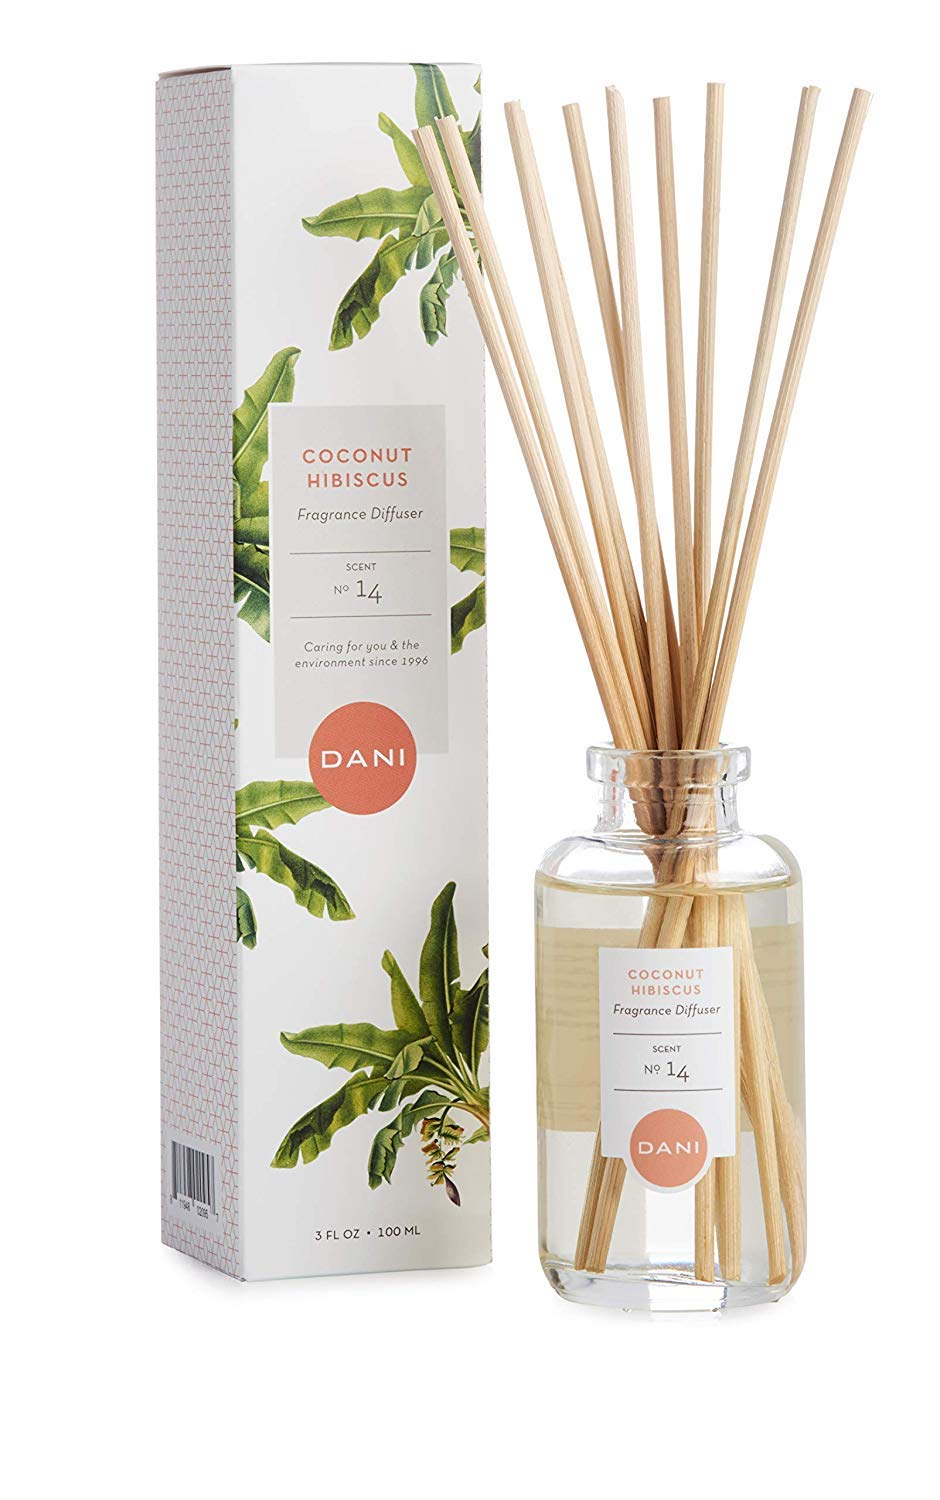 Natural Reed Diffuser Set by DANI Naturals - Tropical Coconut Hibiscus Scent - Aromatherapy Essential Oils - Alcohol Free - 10 Diffuser Sticks - 3.5 Ounce Glass Bottle